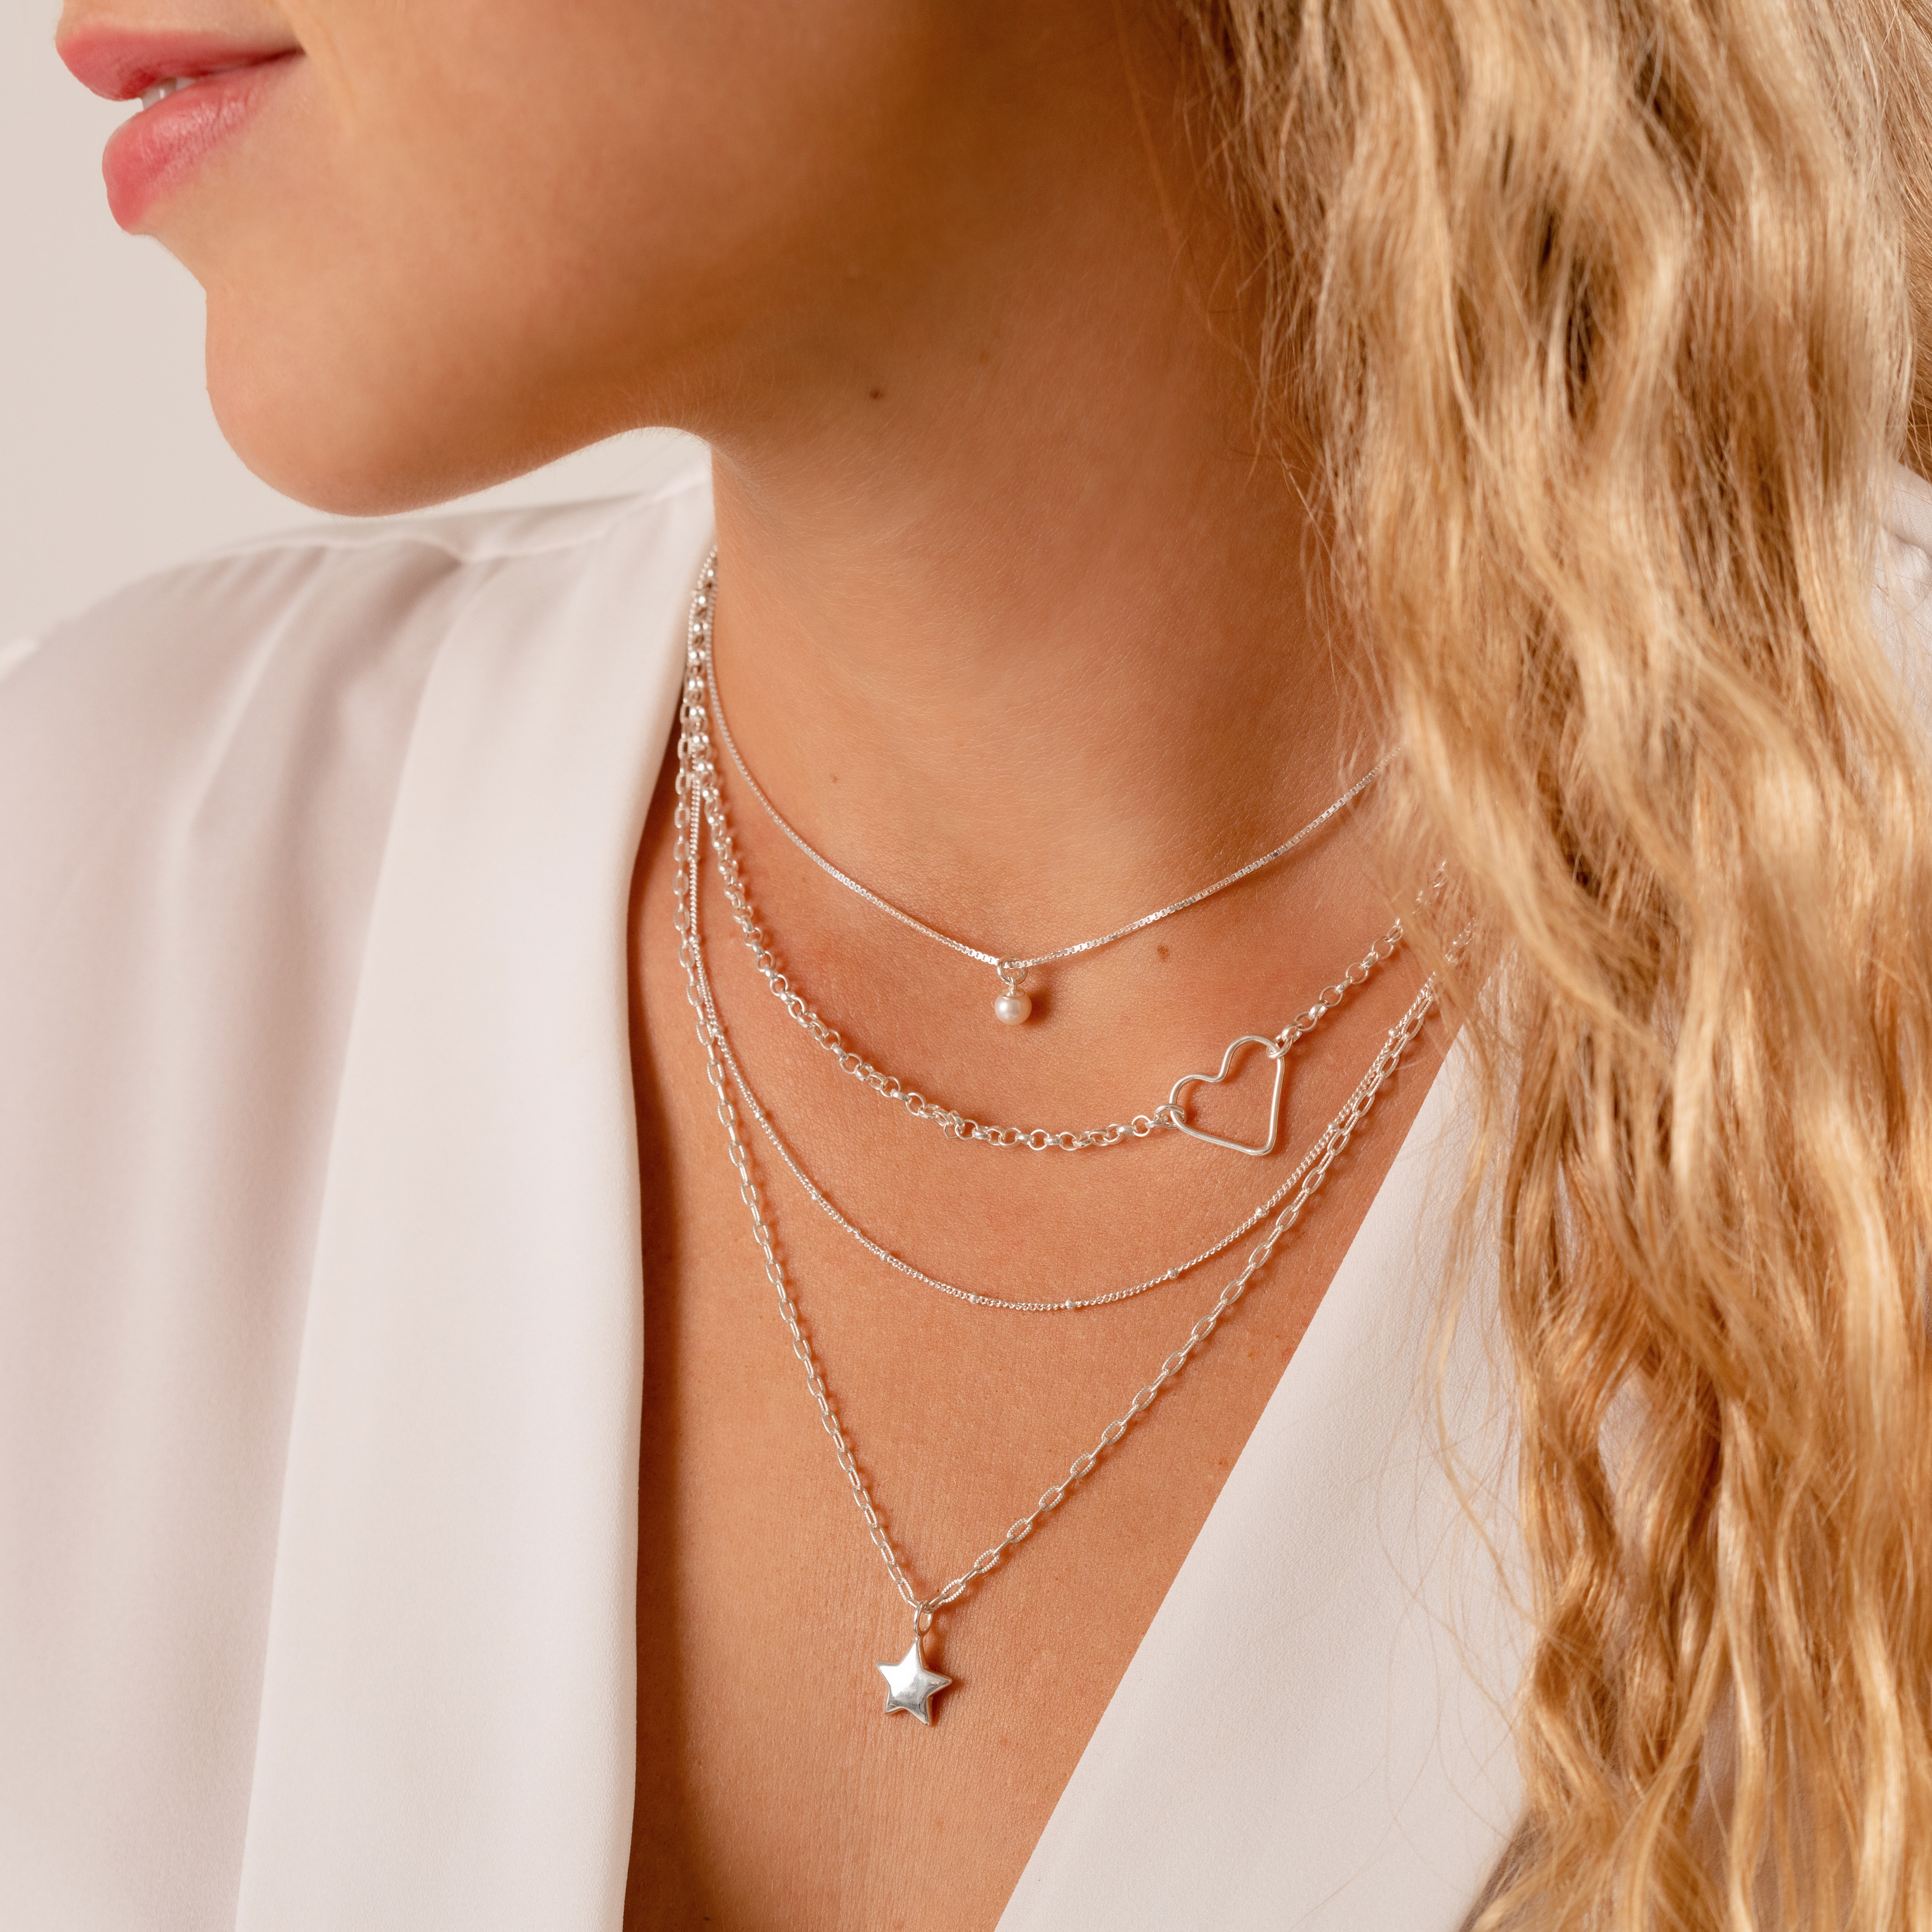 Sterling silver 4 layer heart and star necklace with pearl – with detachable 4th chain